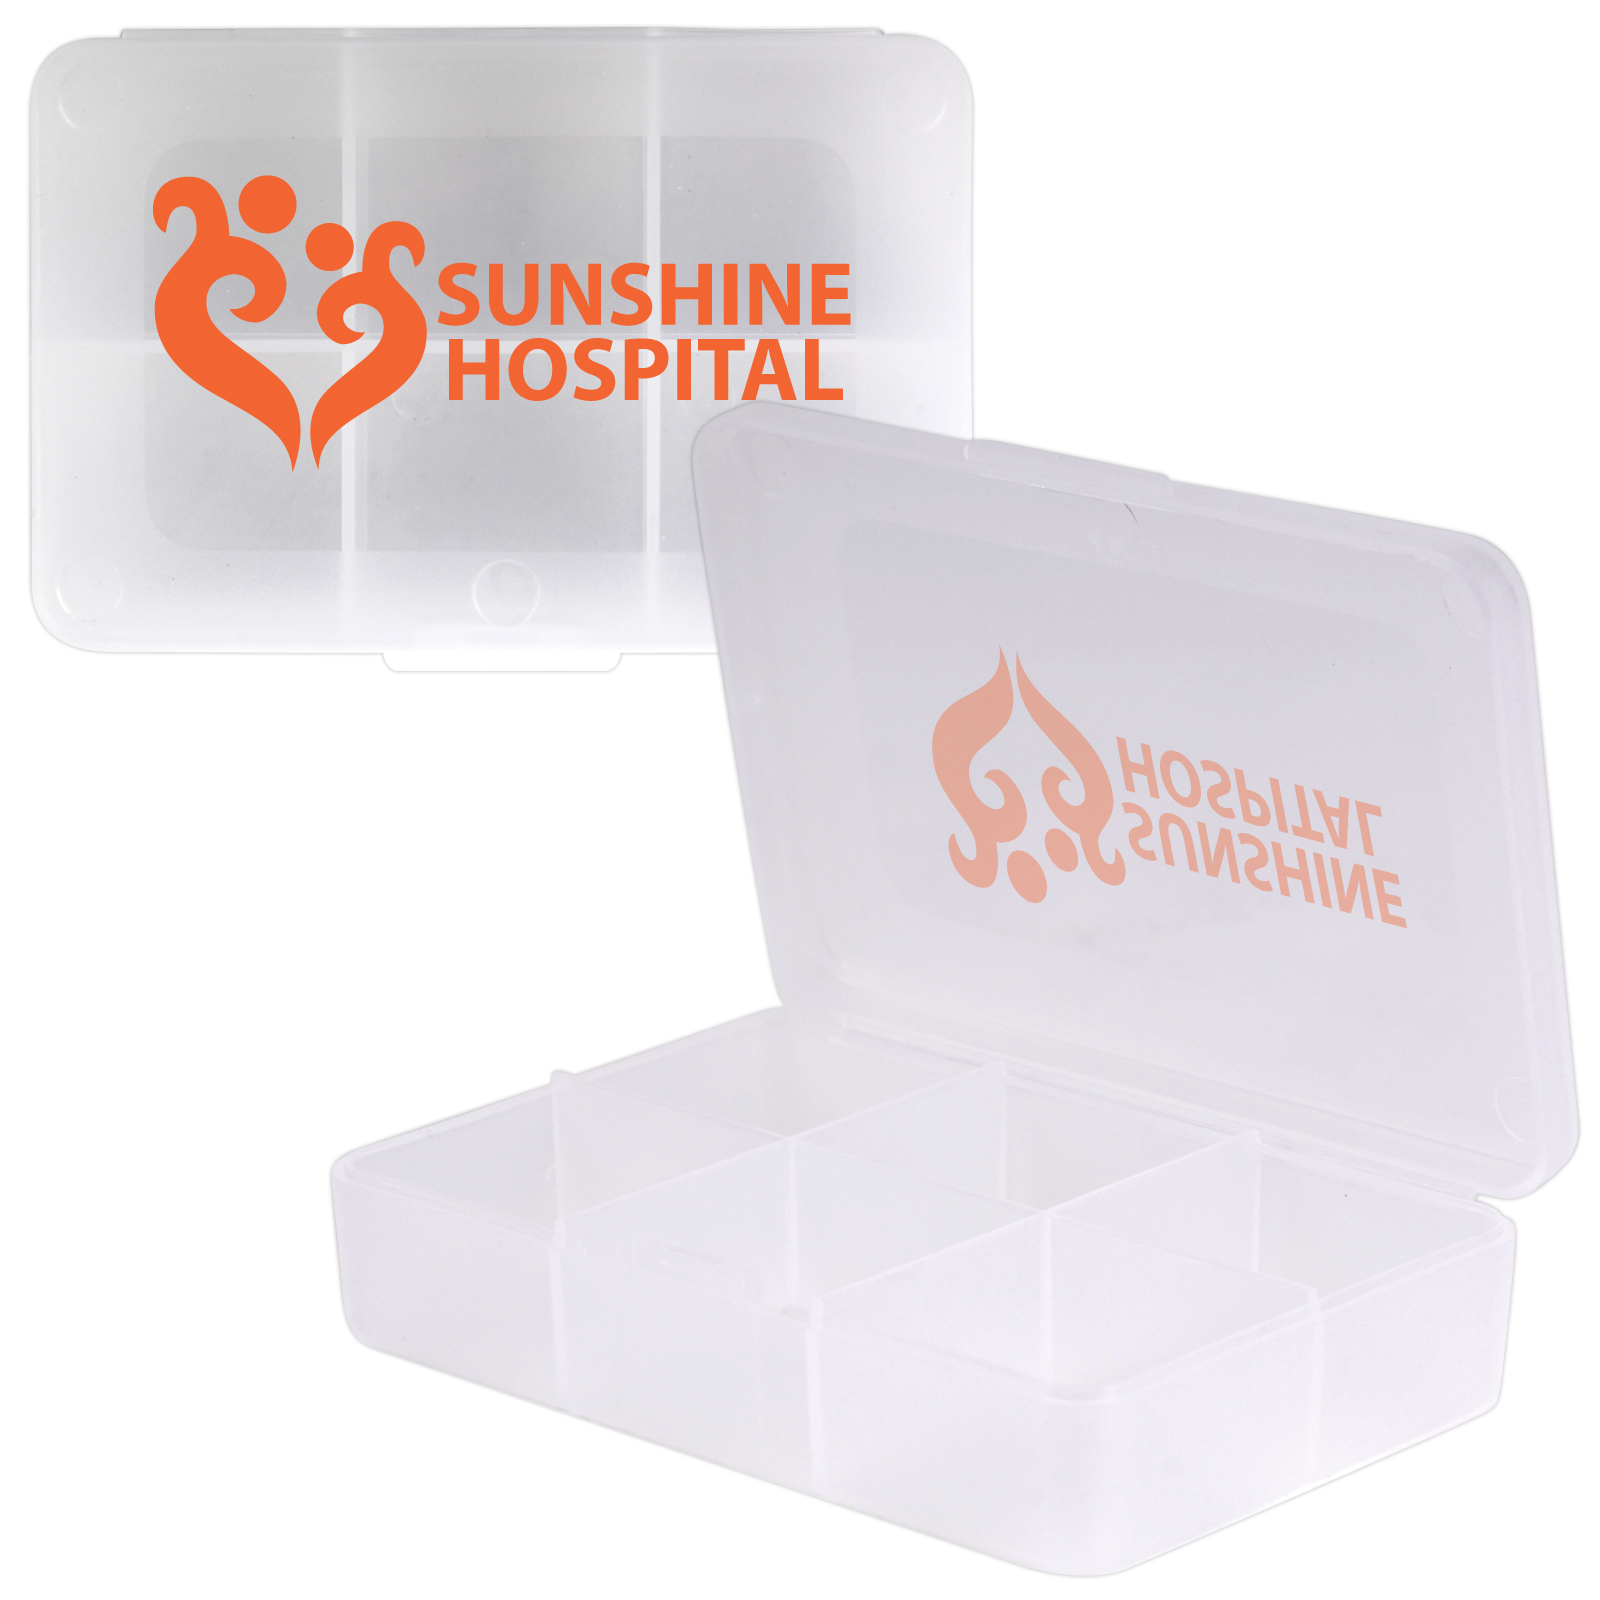 Clear Rectangular 6 Compartment Pill Box - Includes a 1 colour printed logo